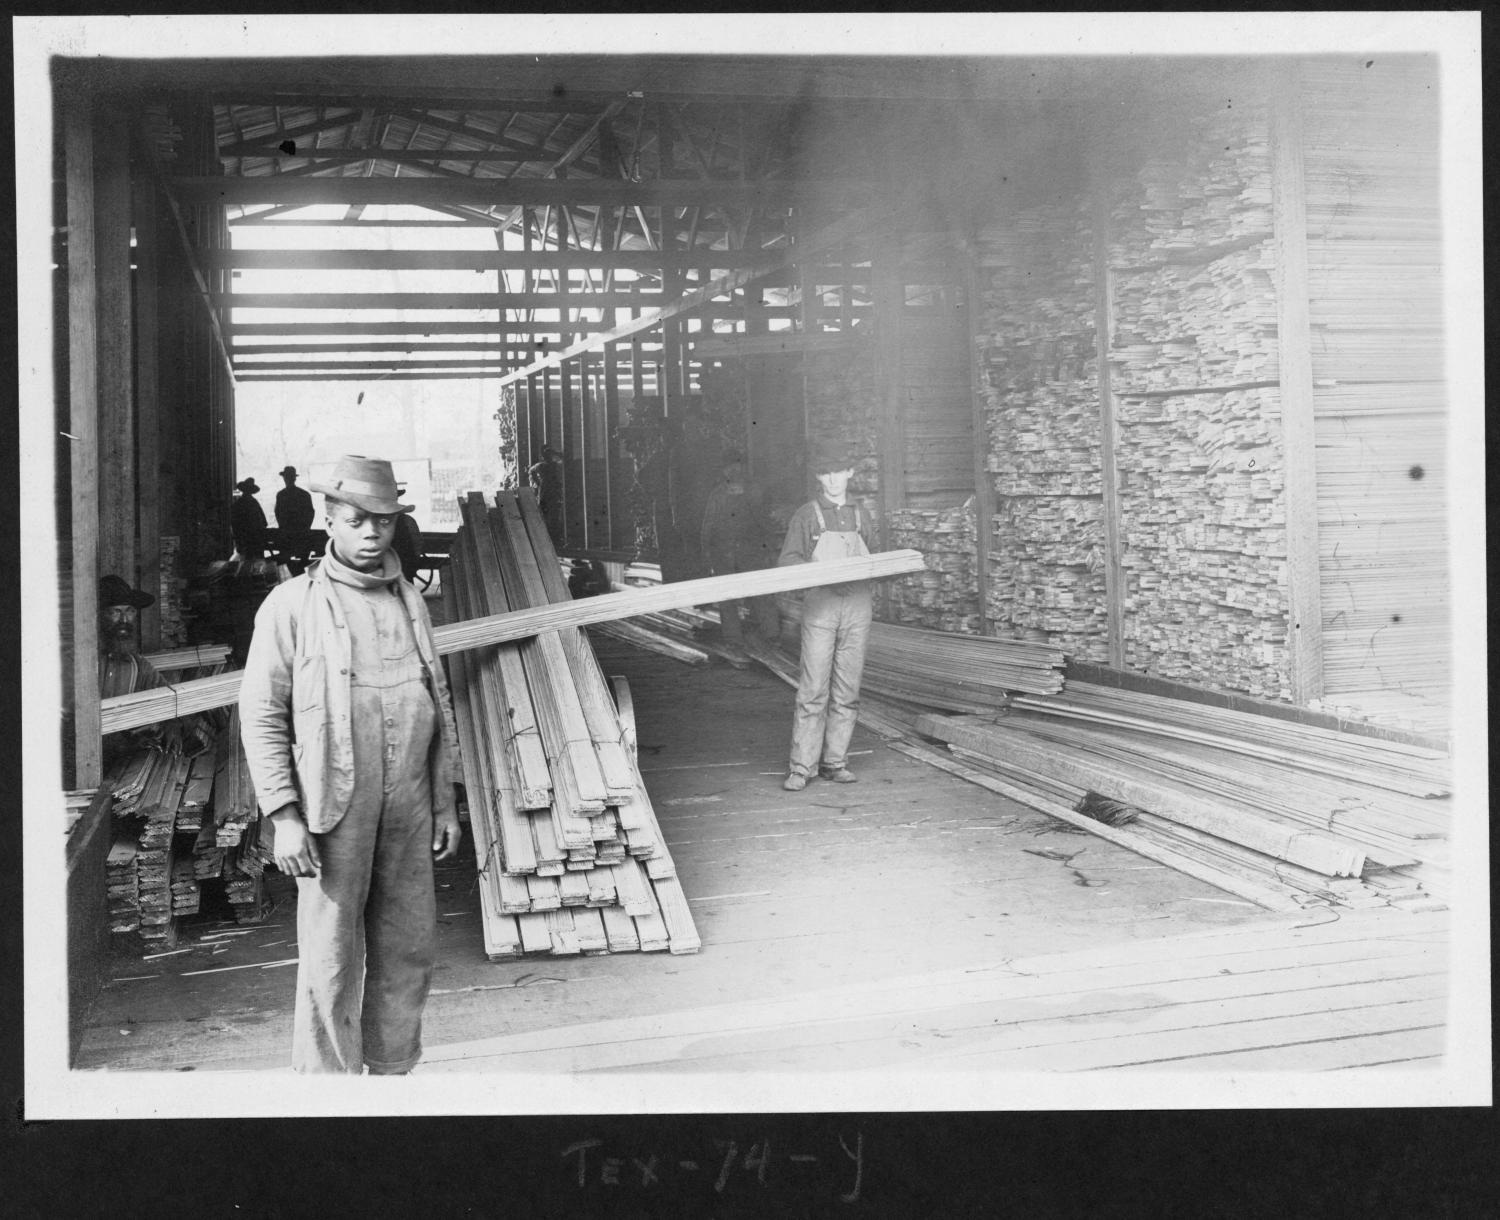 Tex74 Workers with Dressed Lumber in Dry Shed